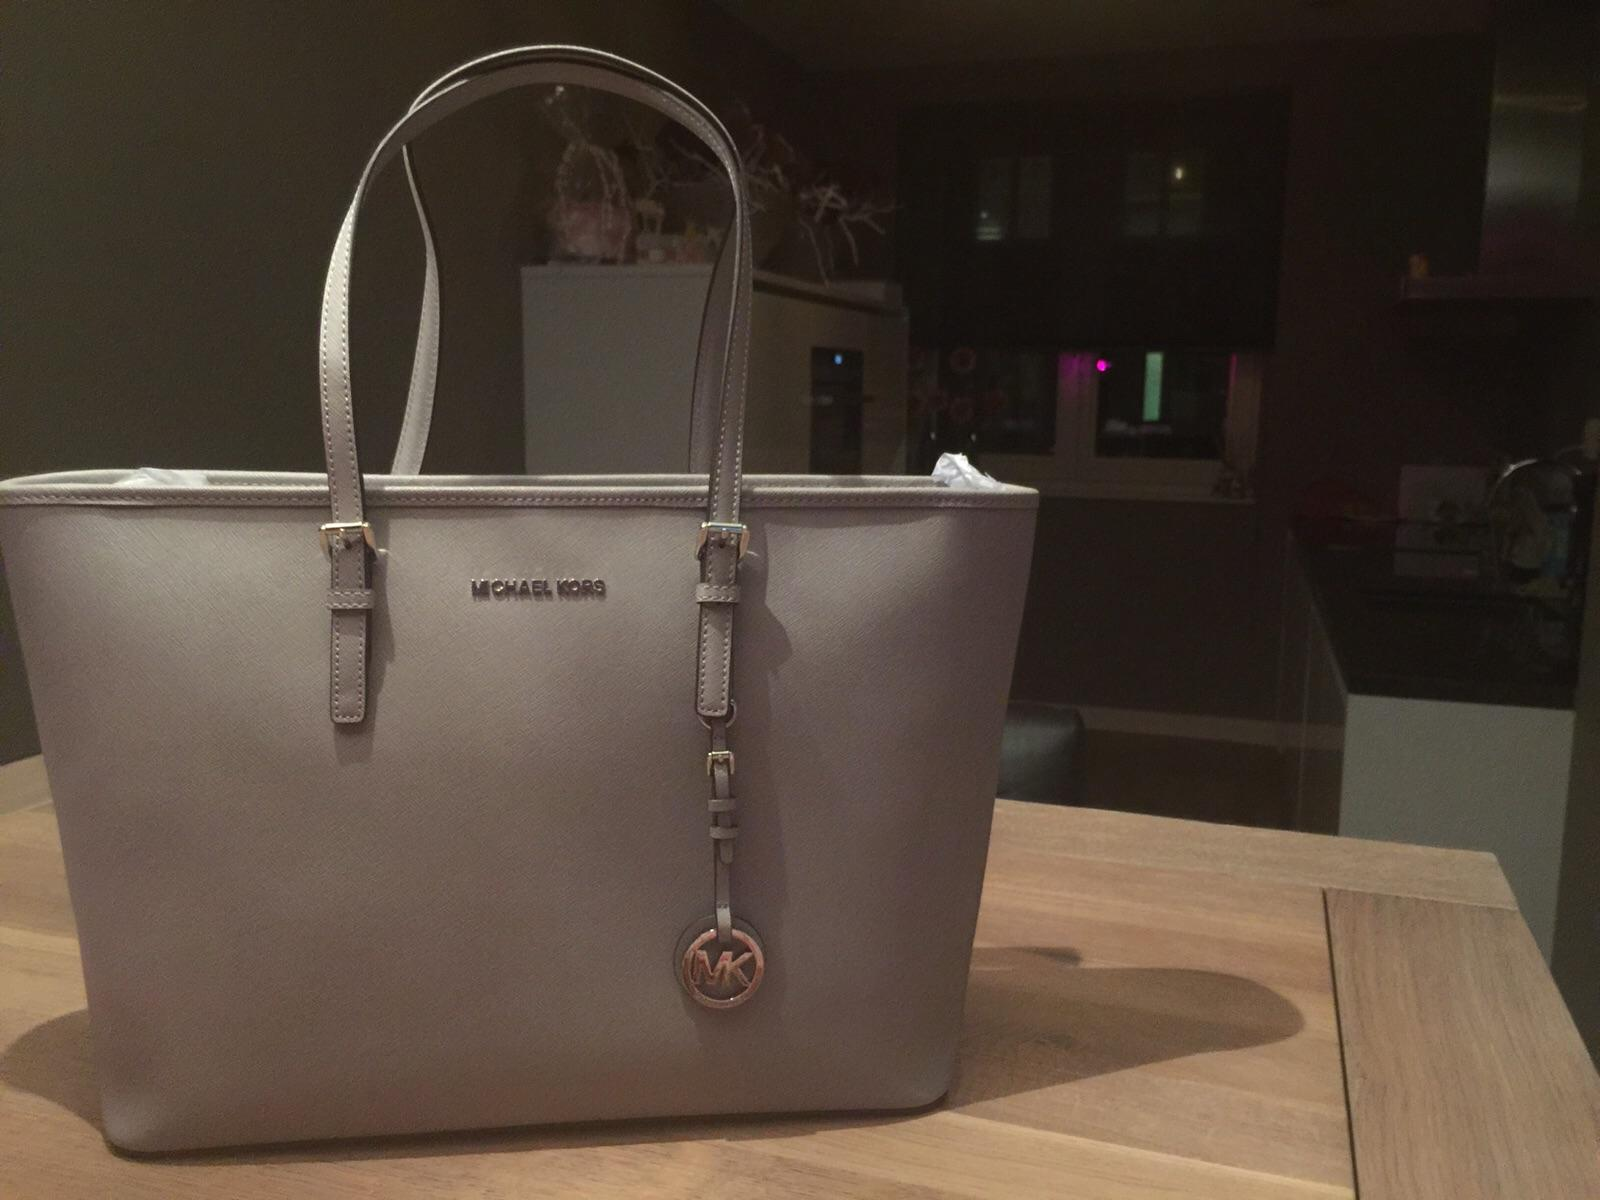 Michael Kors Jet-Set Bag